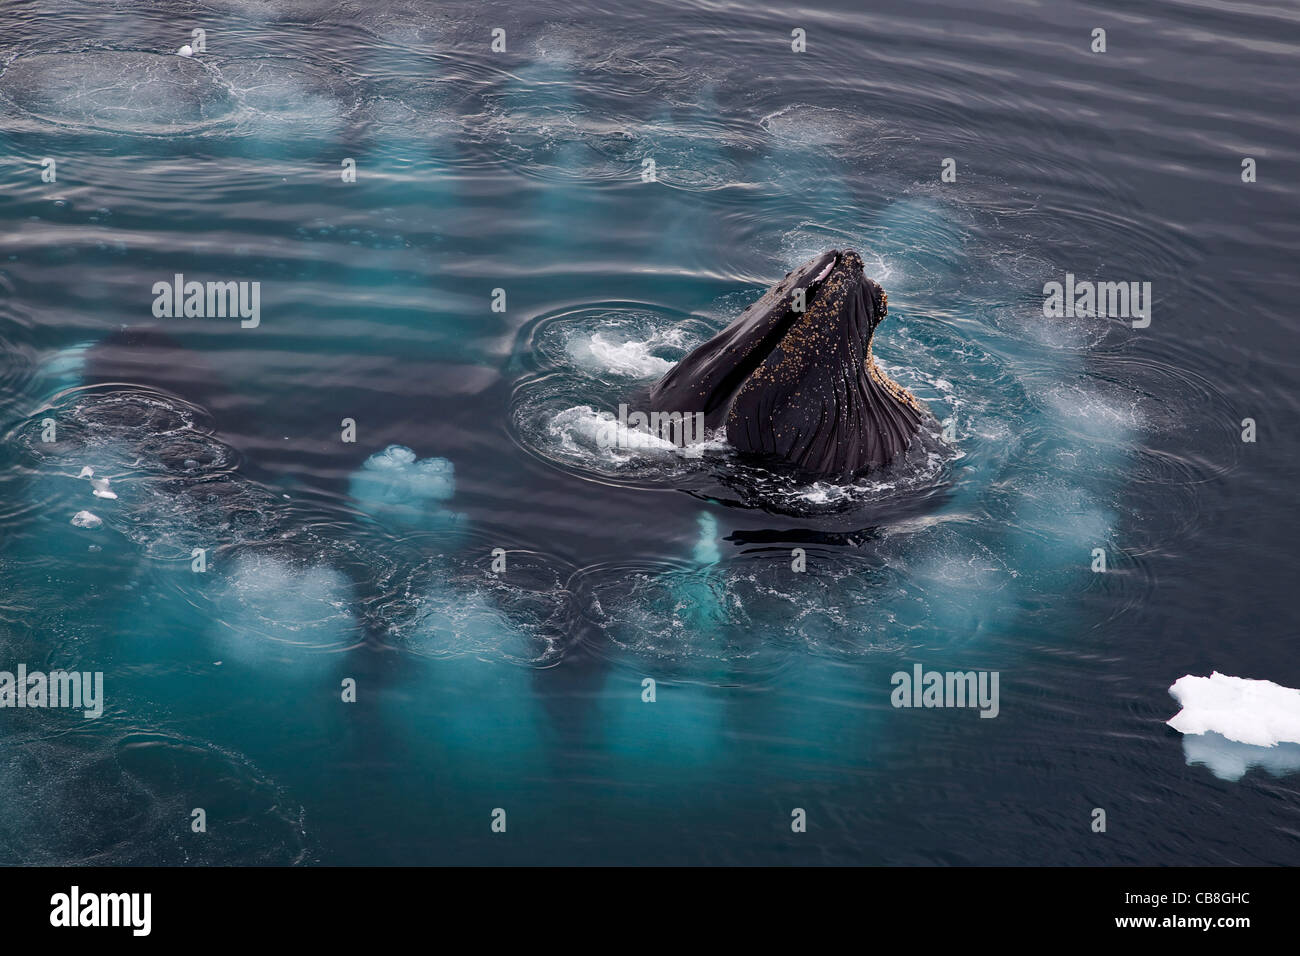 Humpback whales (Megaptera novaeangliae) bubble net feeding by blowing ring of air bubbles at Wilhelmina Bay, Antarctica - Stock Image